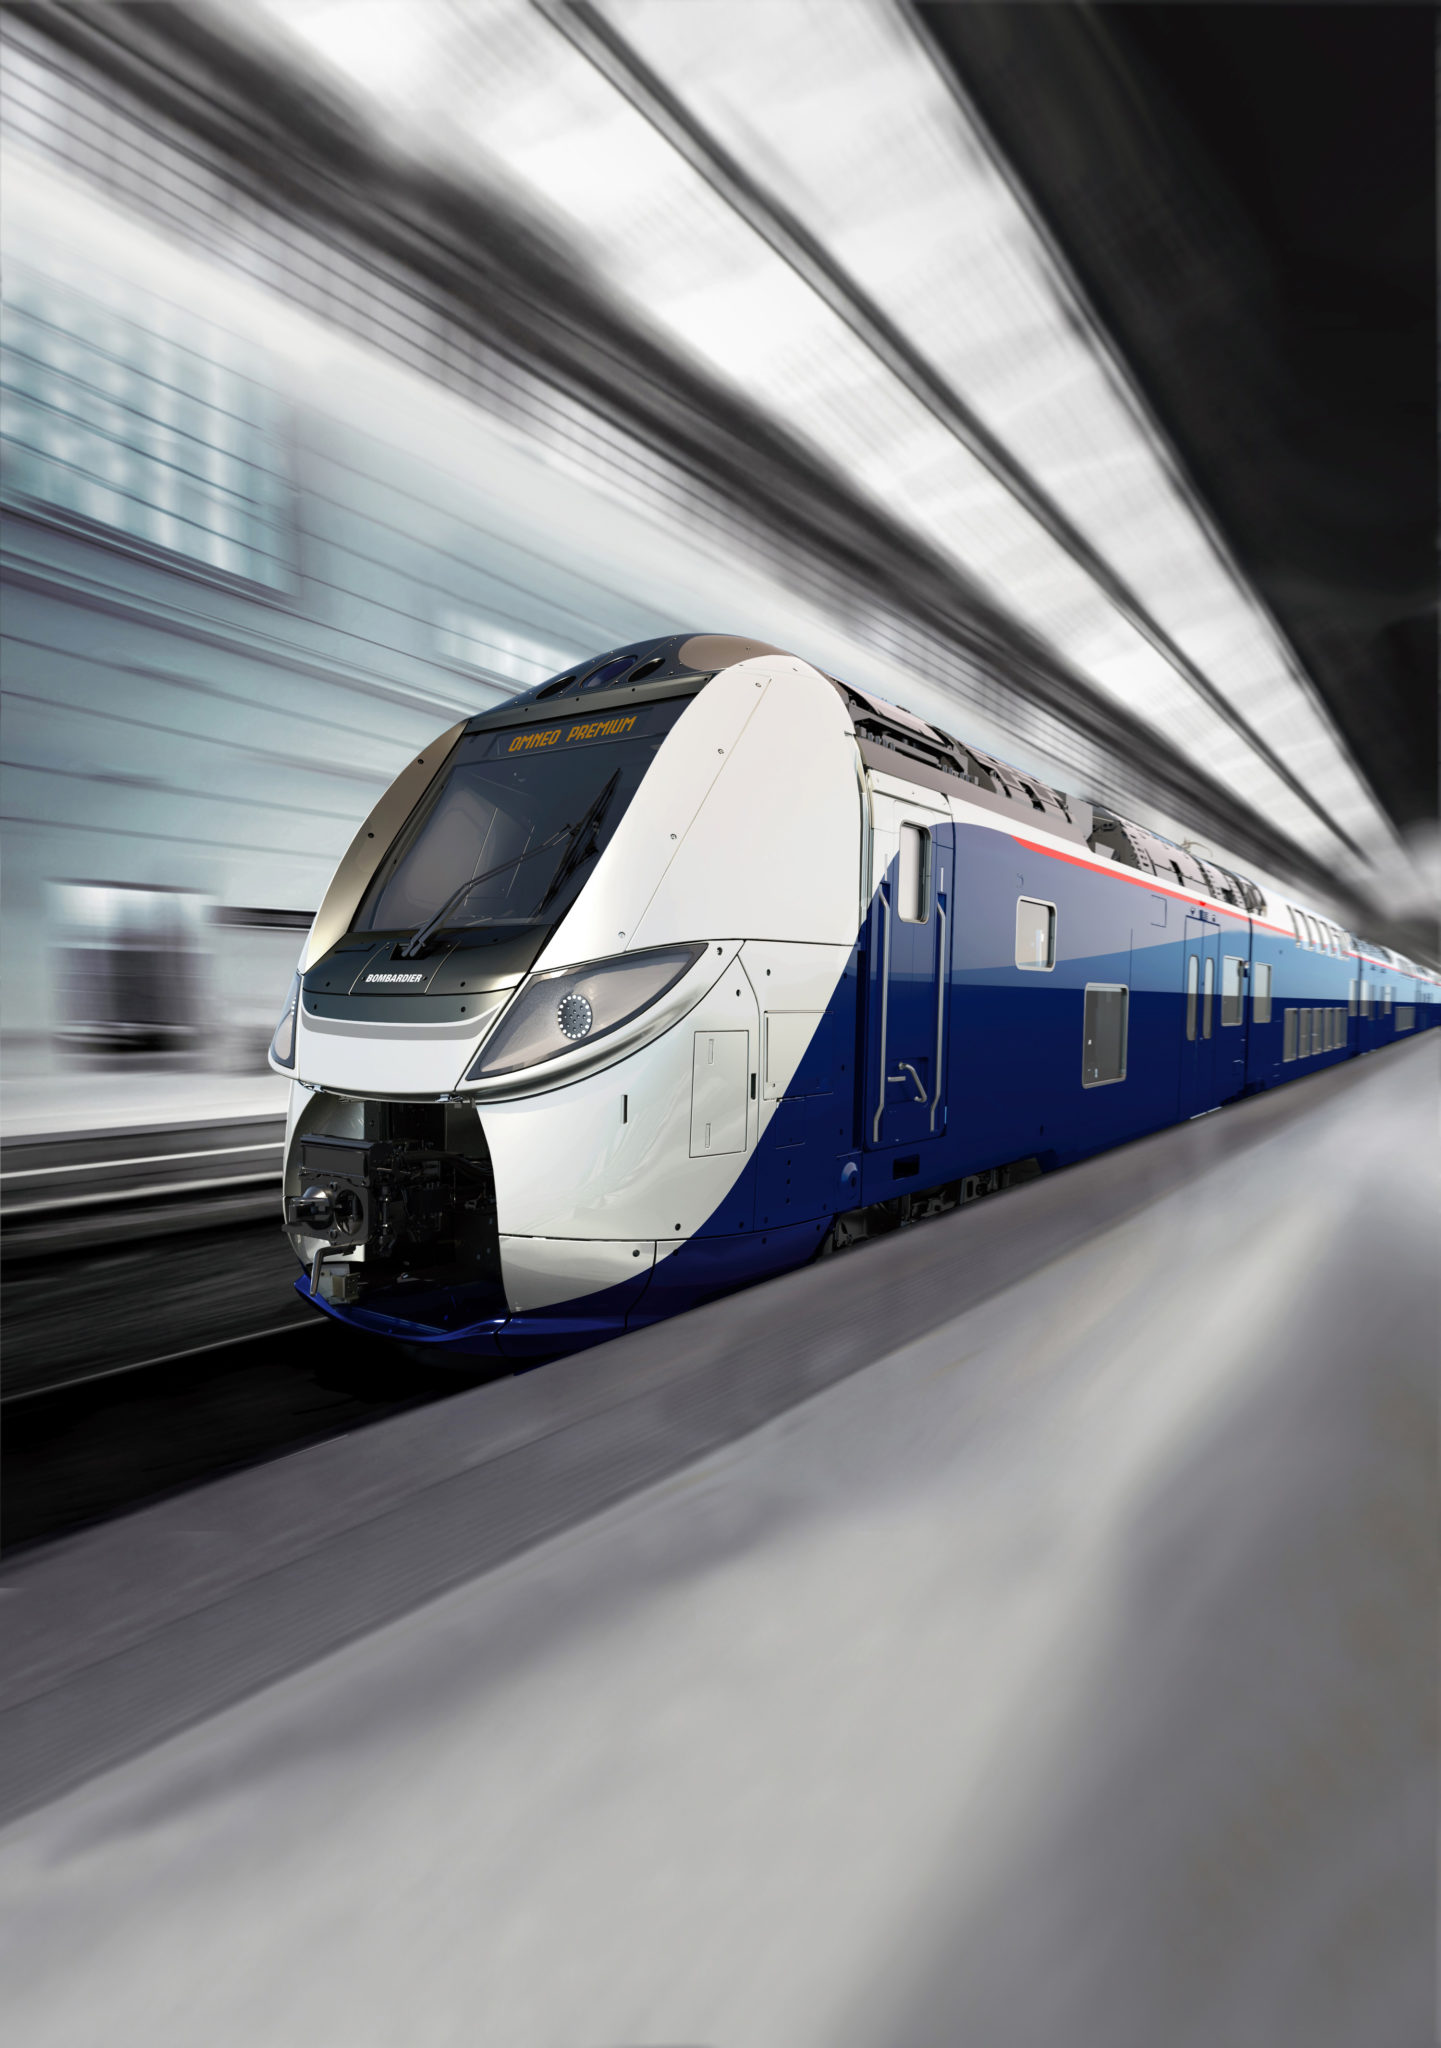 Bombardier OMNEO Premium train